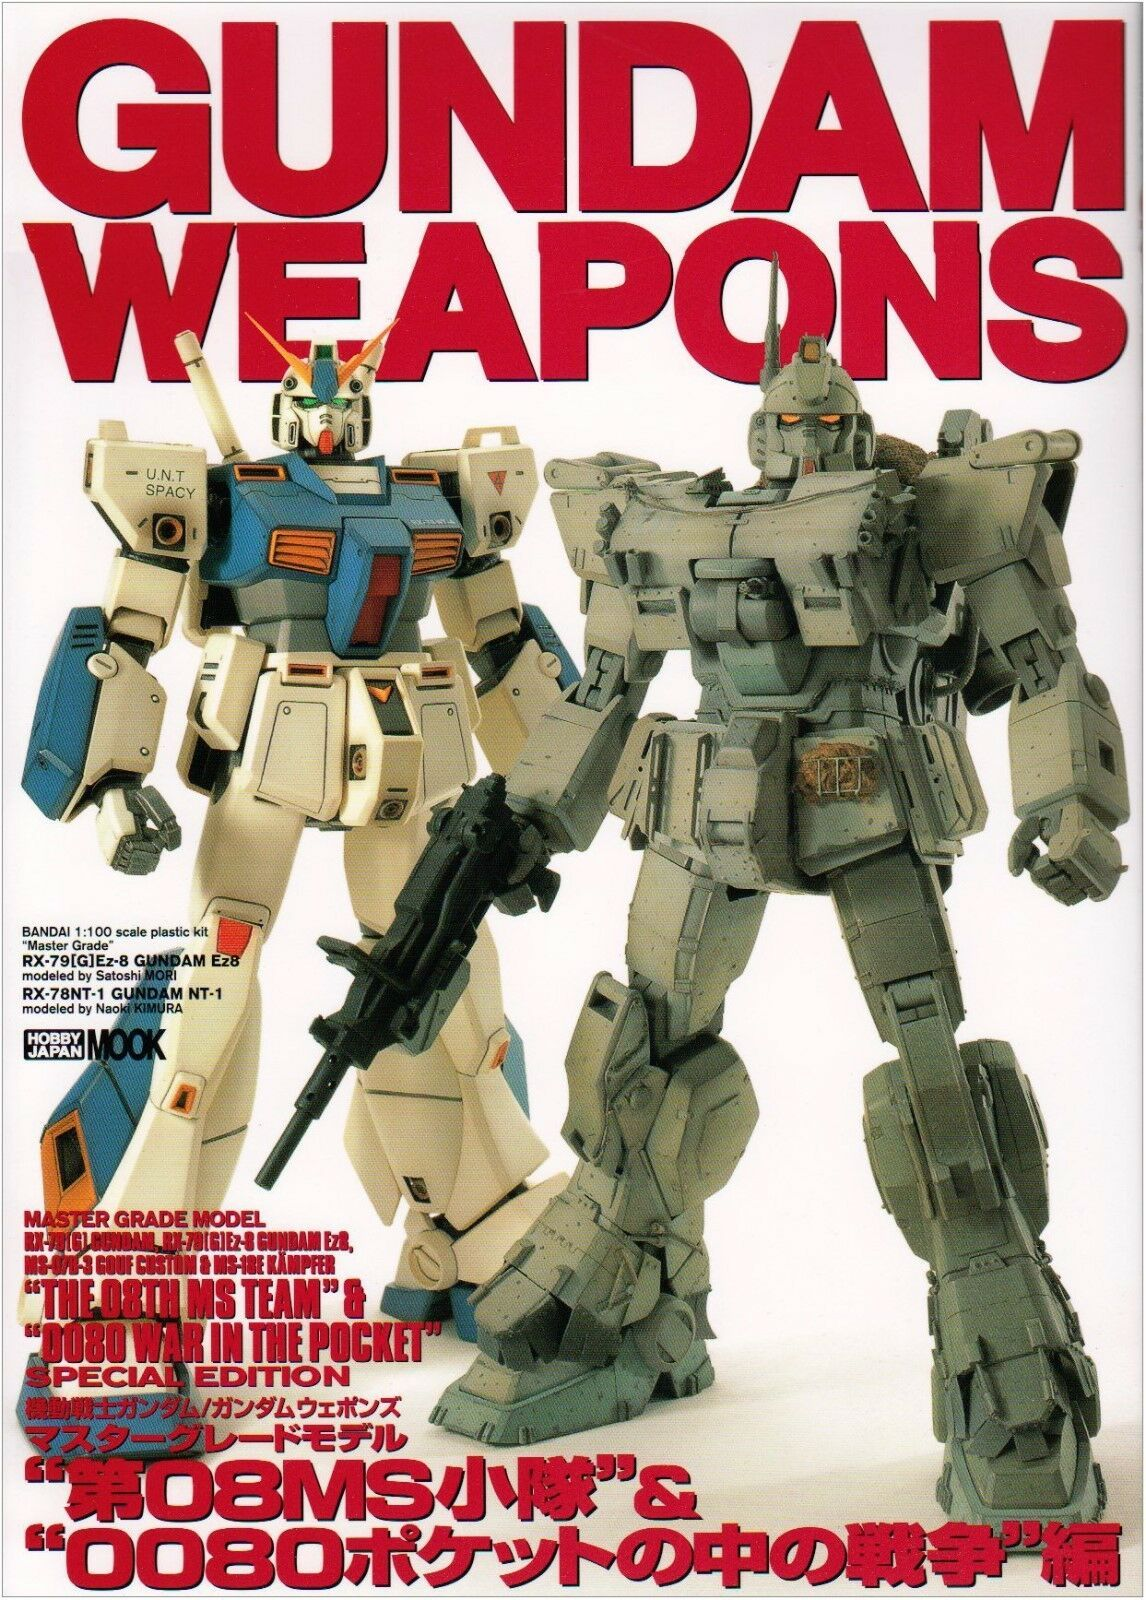 Primary image for GUNDAM WEAPONS Dai 08MS Shoutai 0080 Pocket War Hen Japan Model Photo Art Book